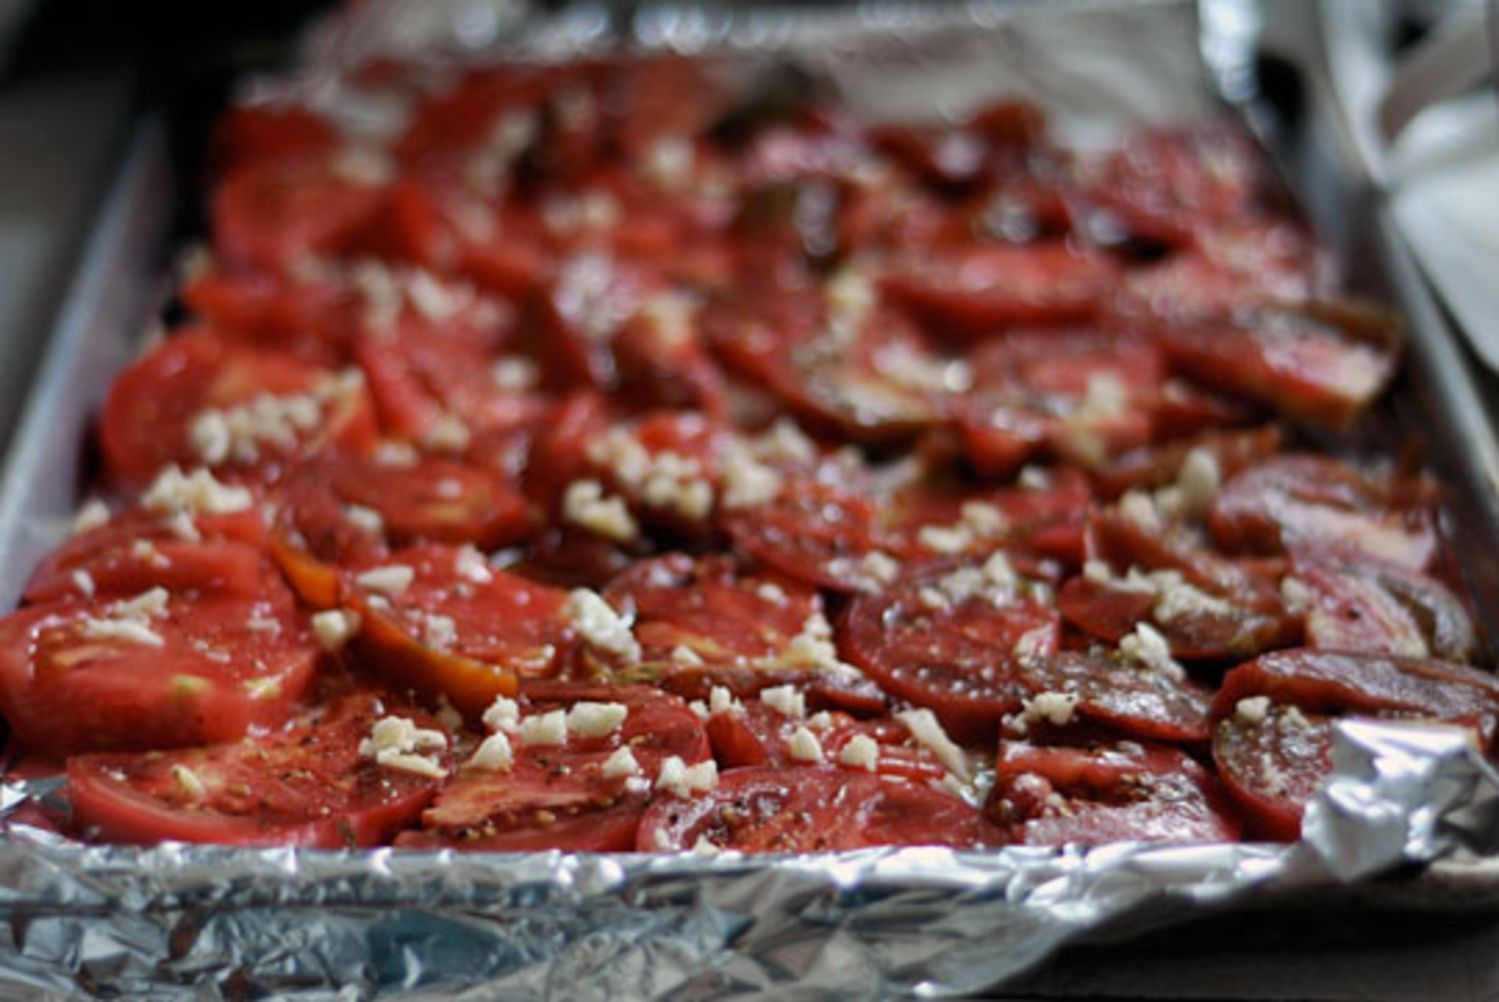 What Should I Do With Oven-Roasted Tomatoes?